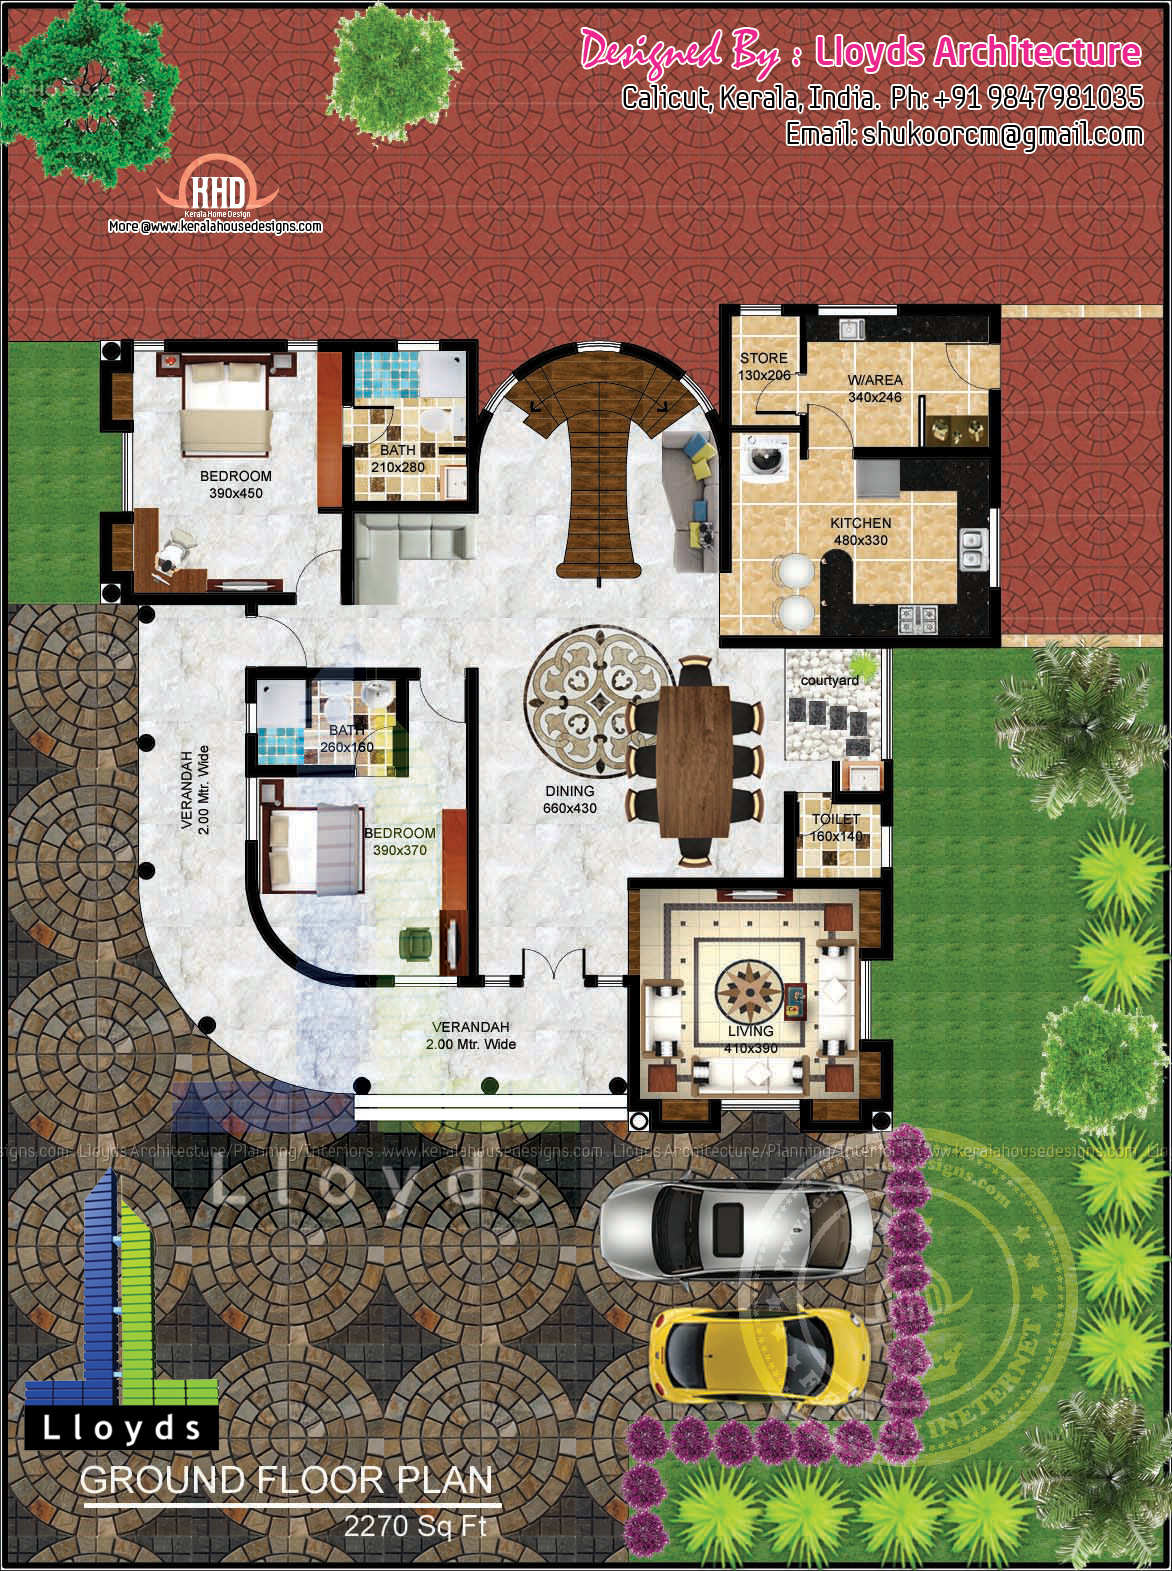 5 bedroom luxurious bungalow floor plan and 3d view for Pictures of house designs and floor plans